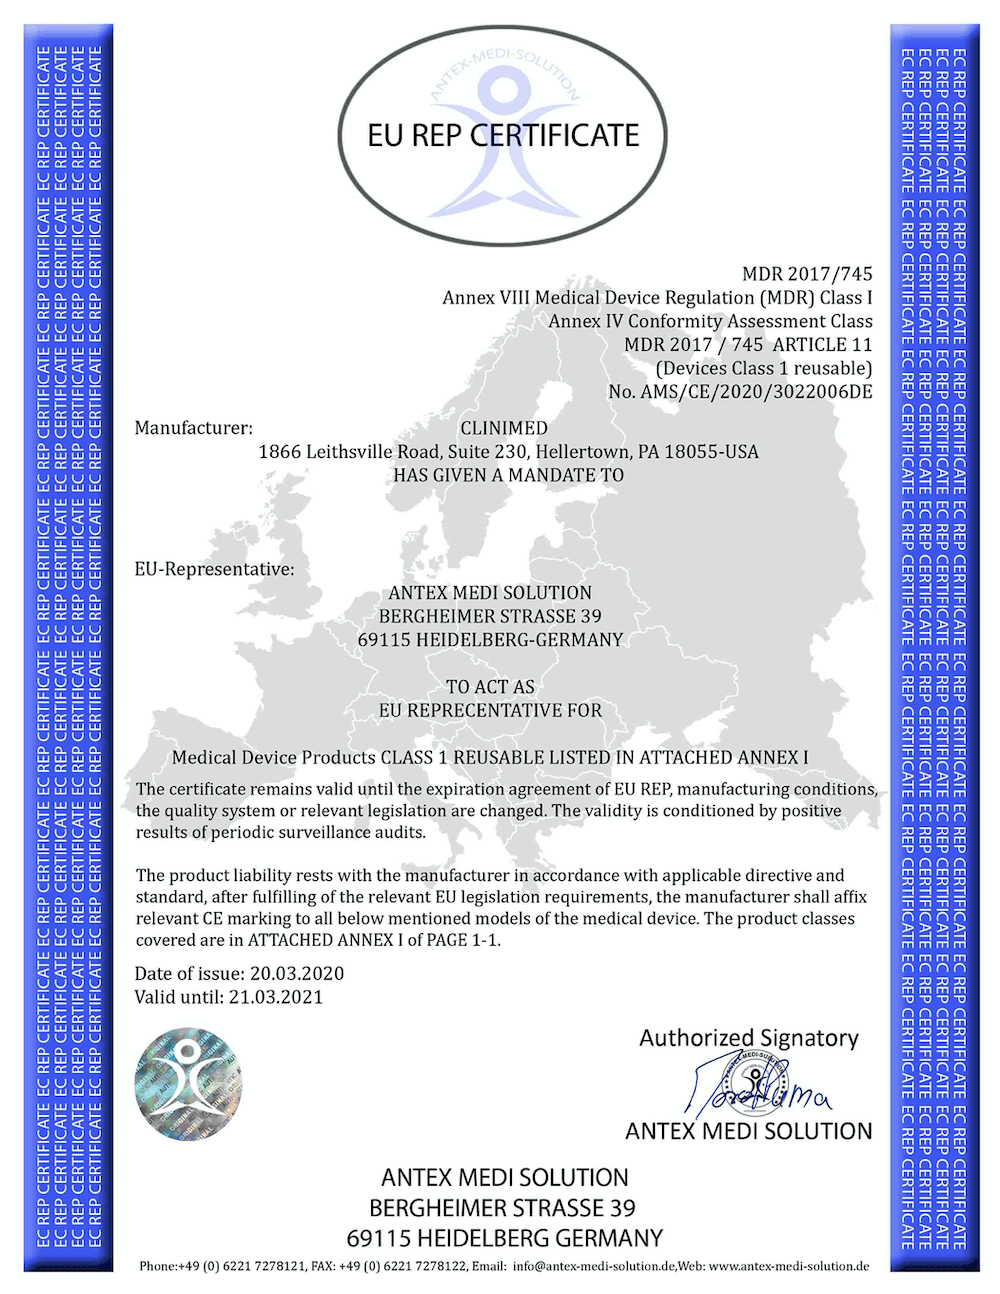 Certificate-Product-Range-Clinimed-1